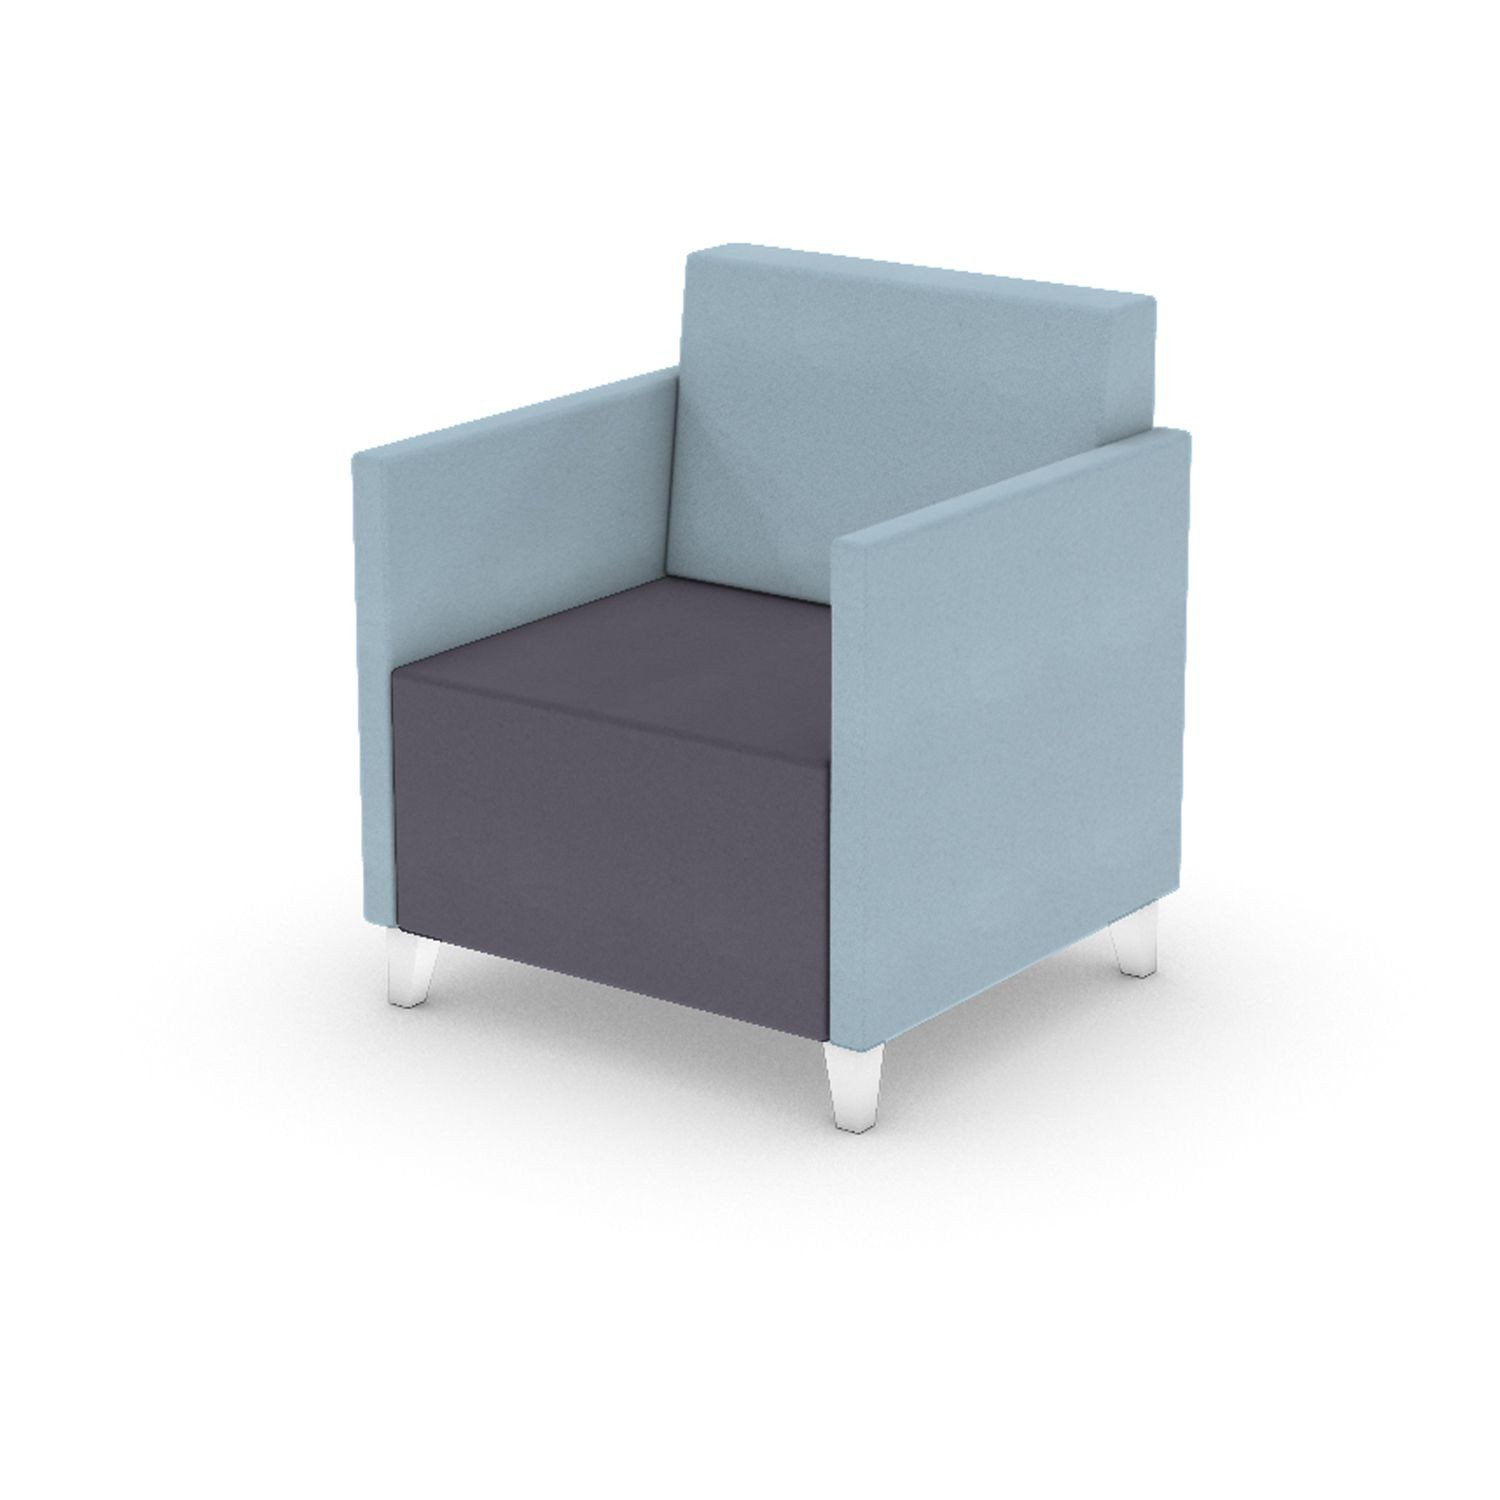 Soft Seating Rapid Chair